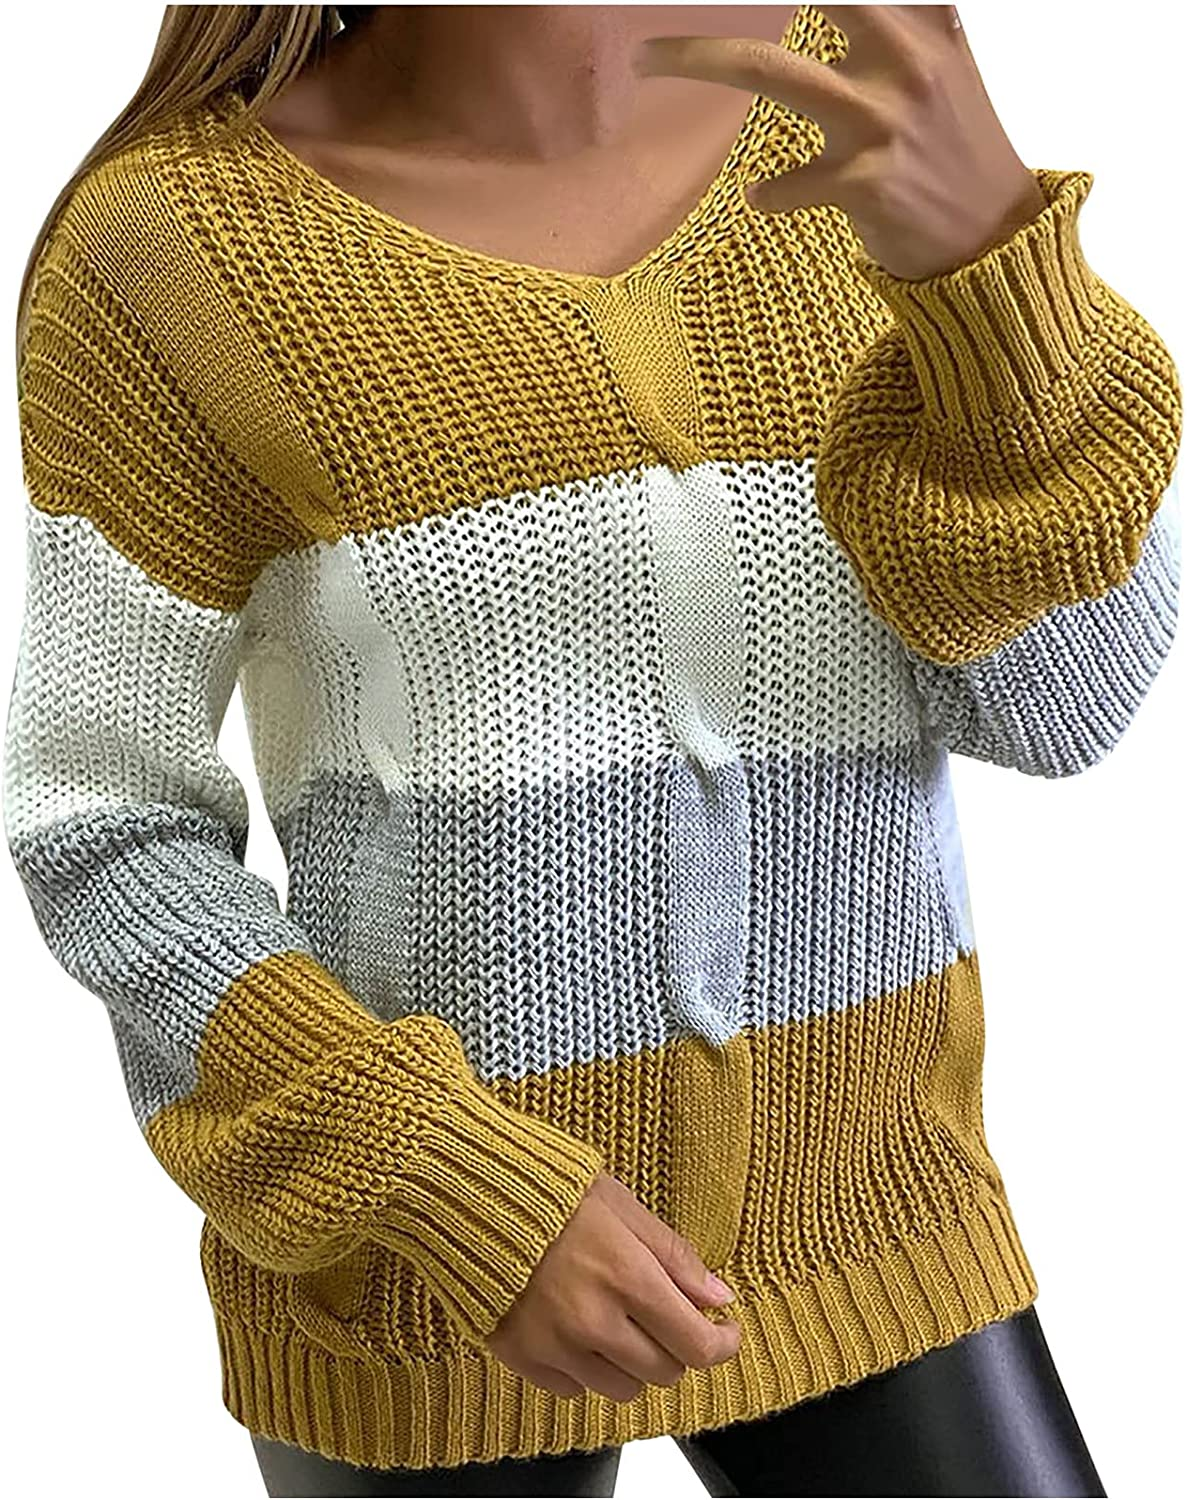 Knitted Sweater for Womens Warm Batwing Sleeve Pleated Jumper Tops O Neck Color Block Sweatershirt Loose Pullover